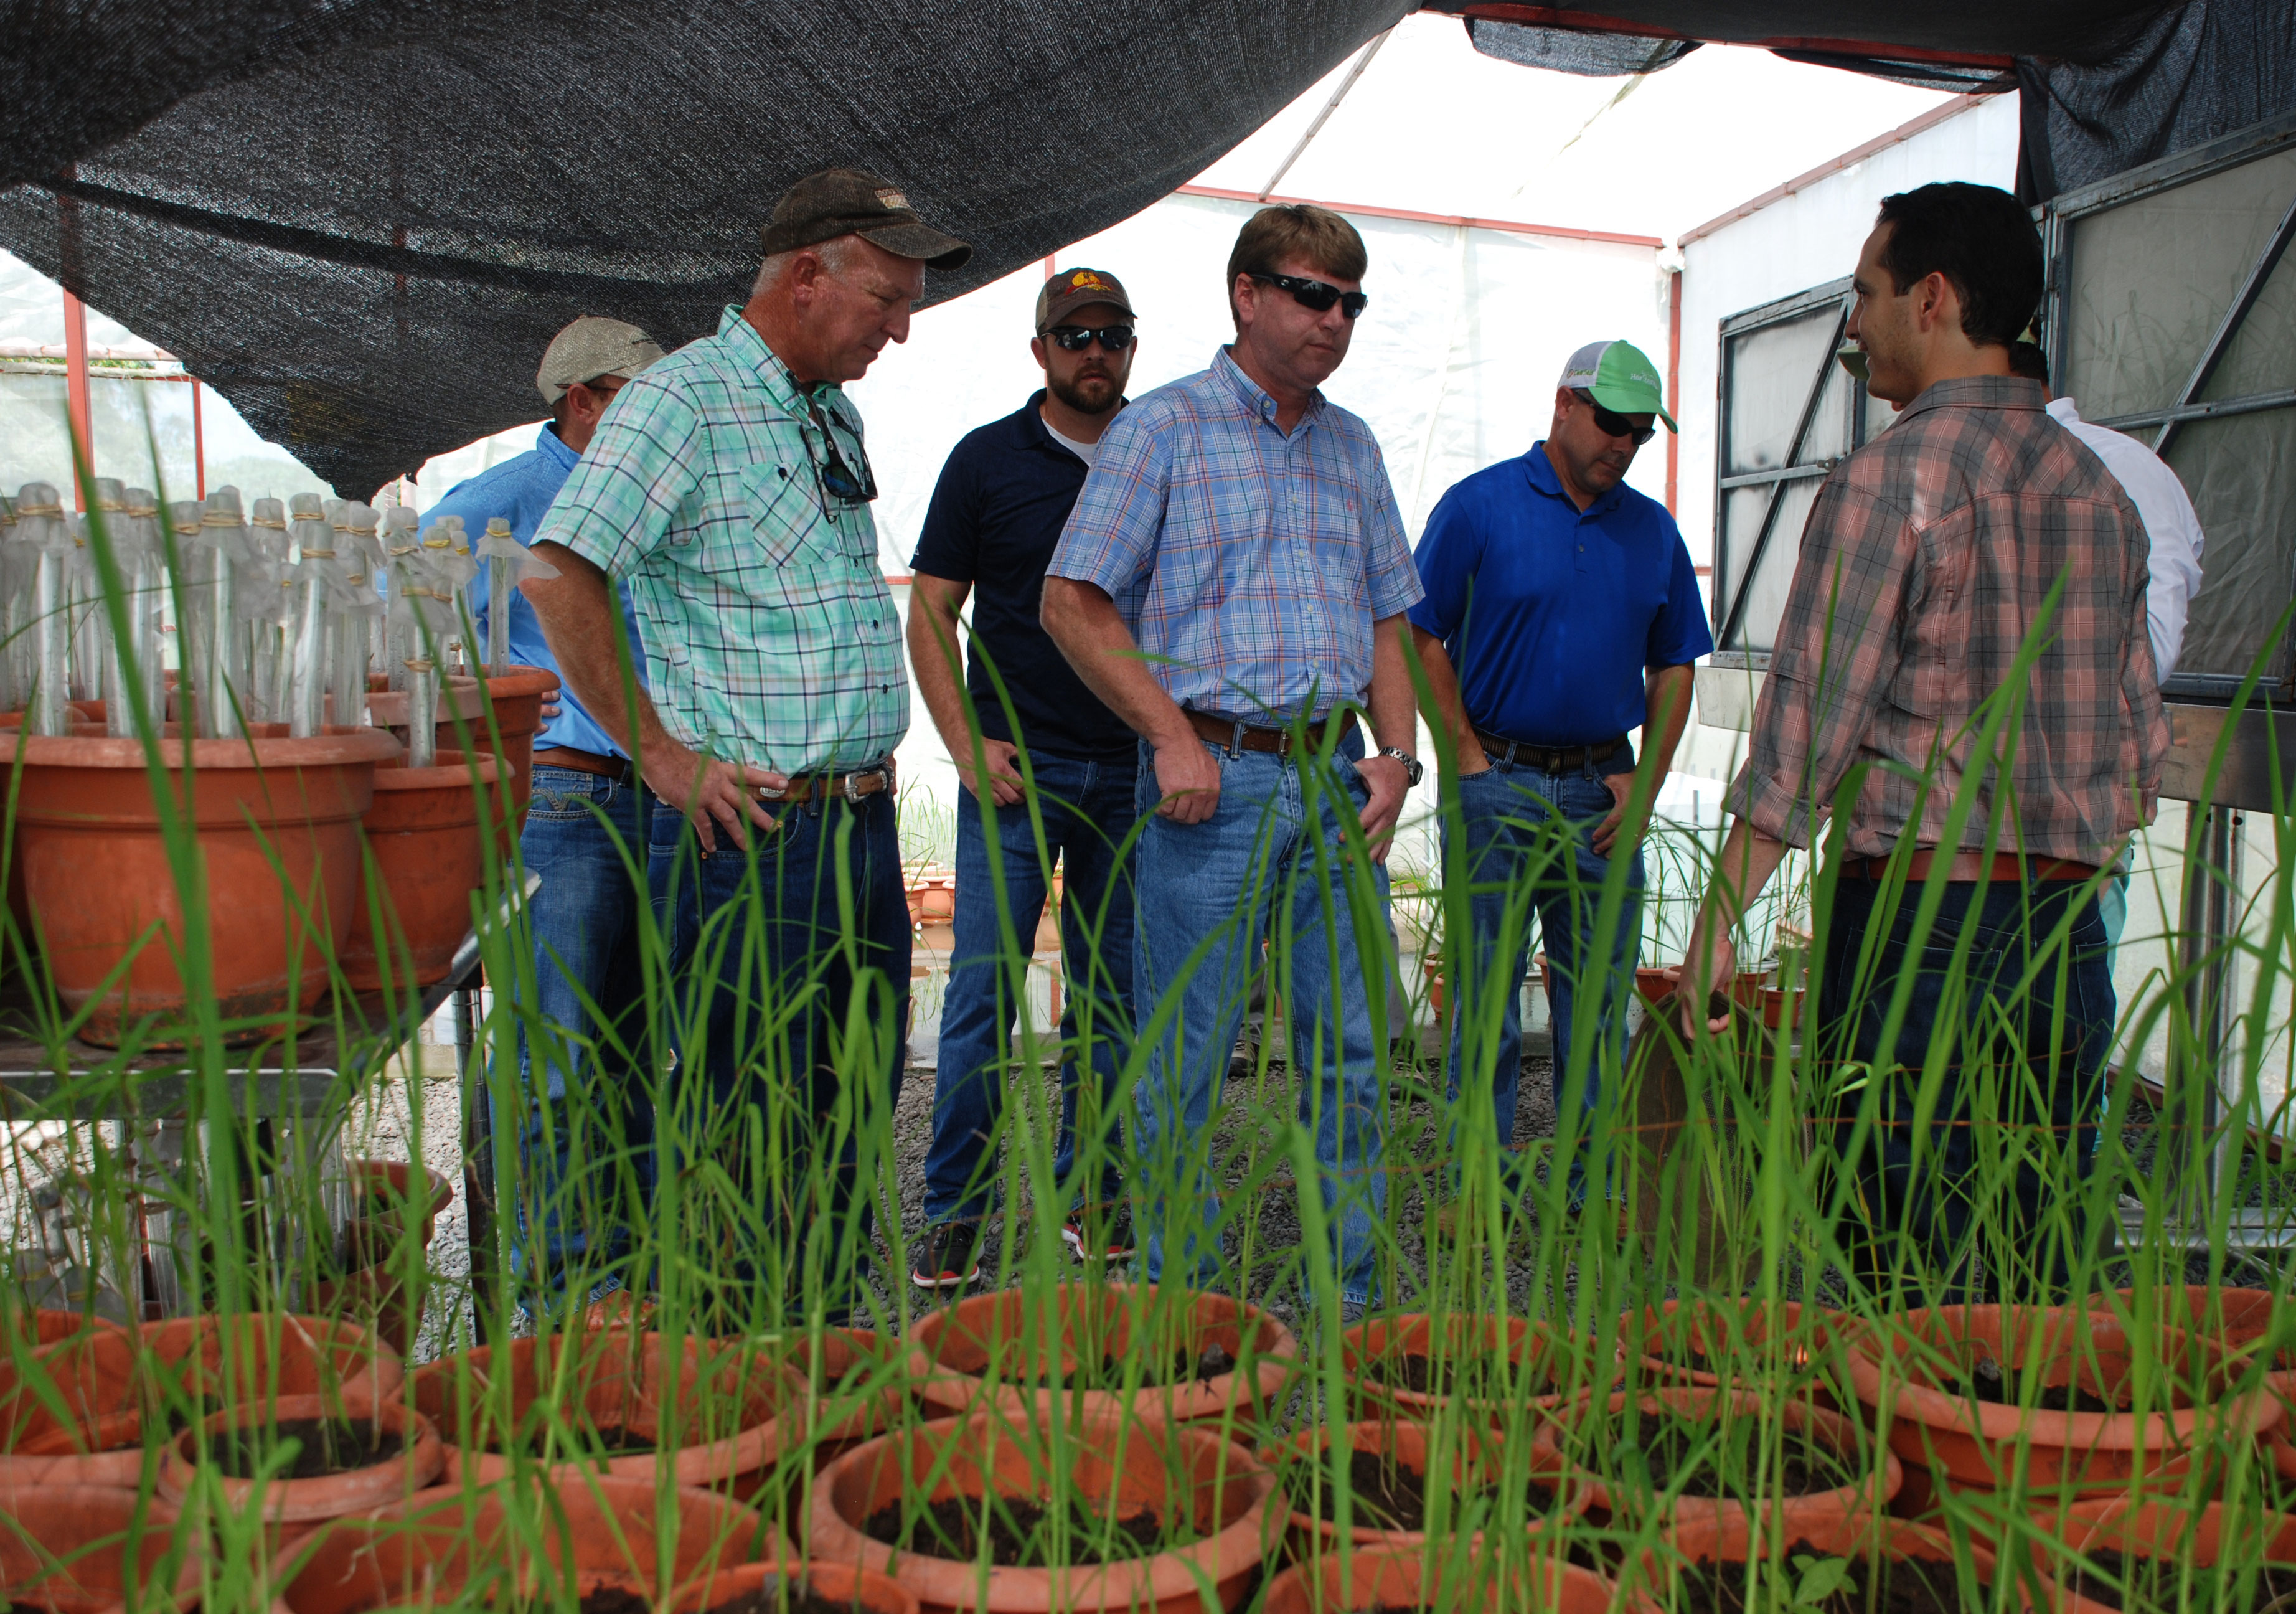 Intl-Rice-Leadership-class at research facility in Nicaragua, farmers stand near rice plants in pots